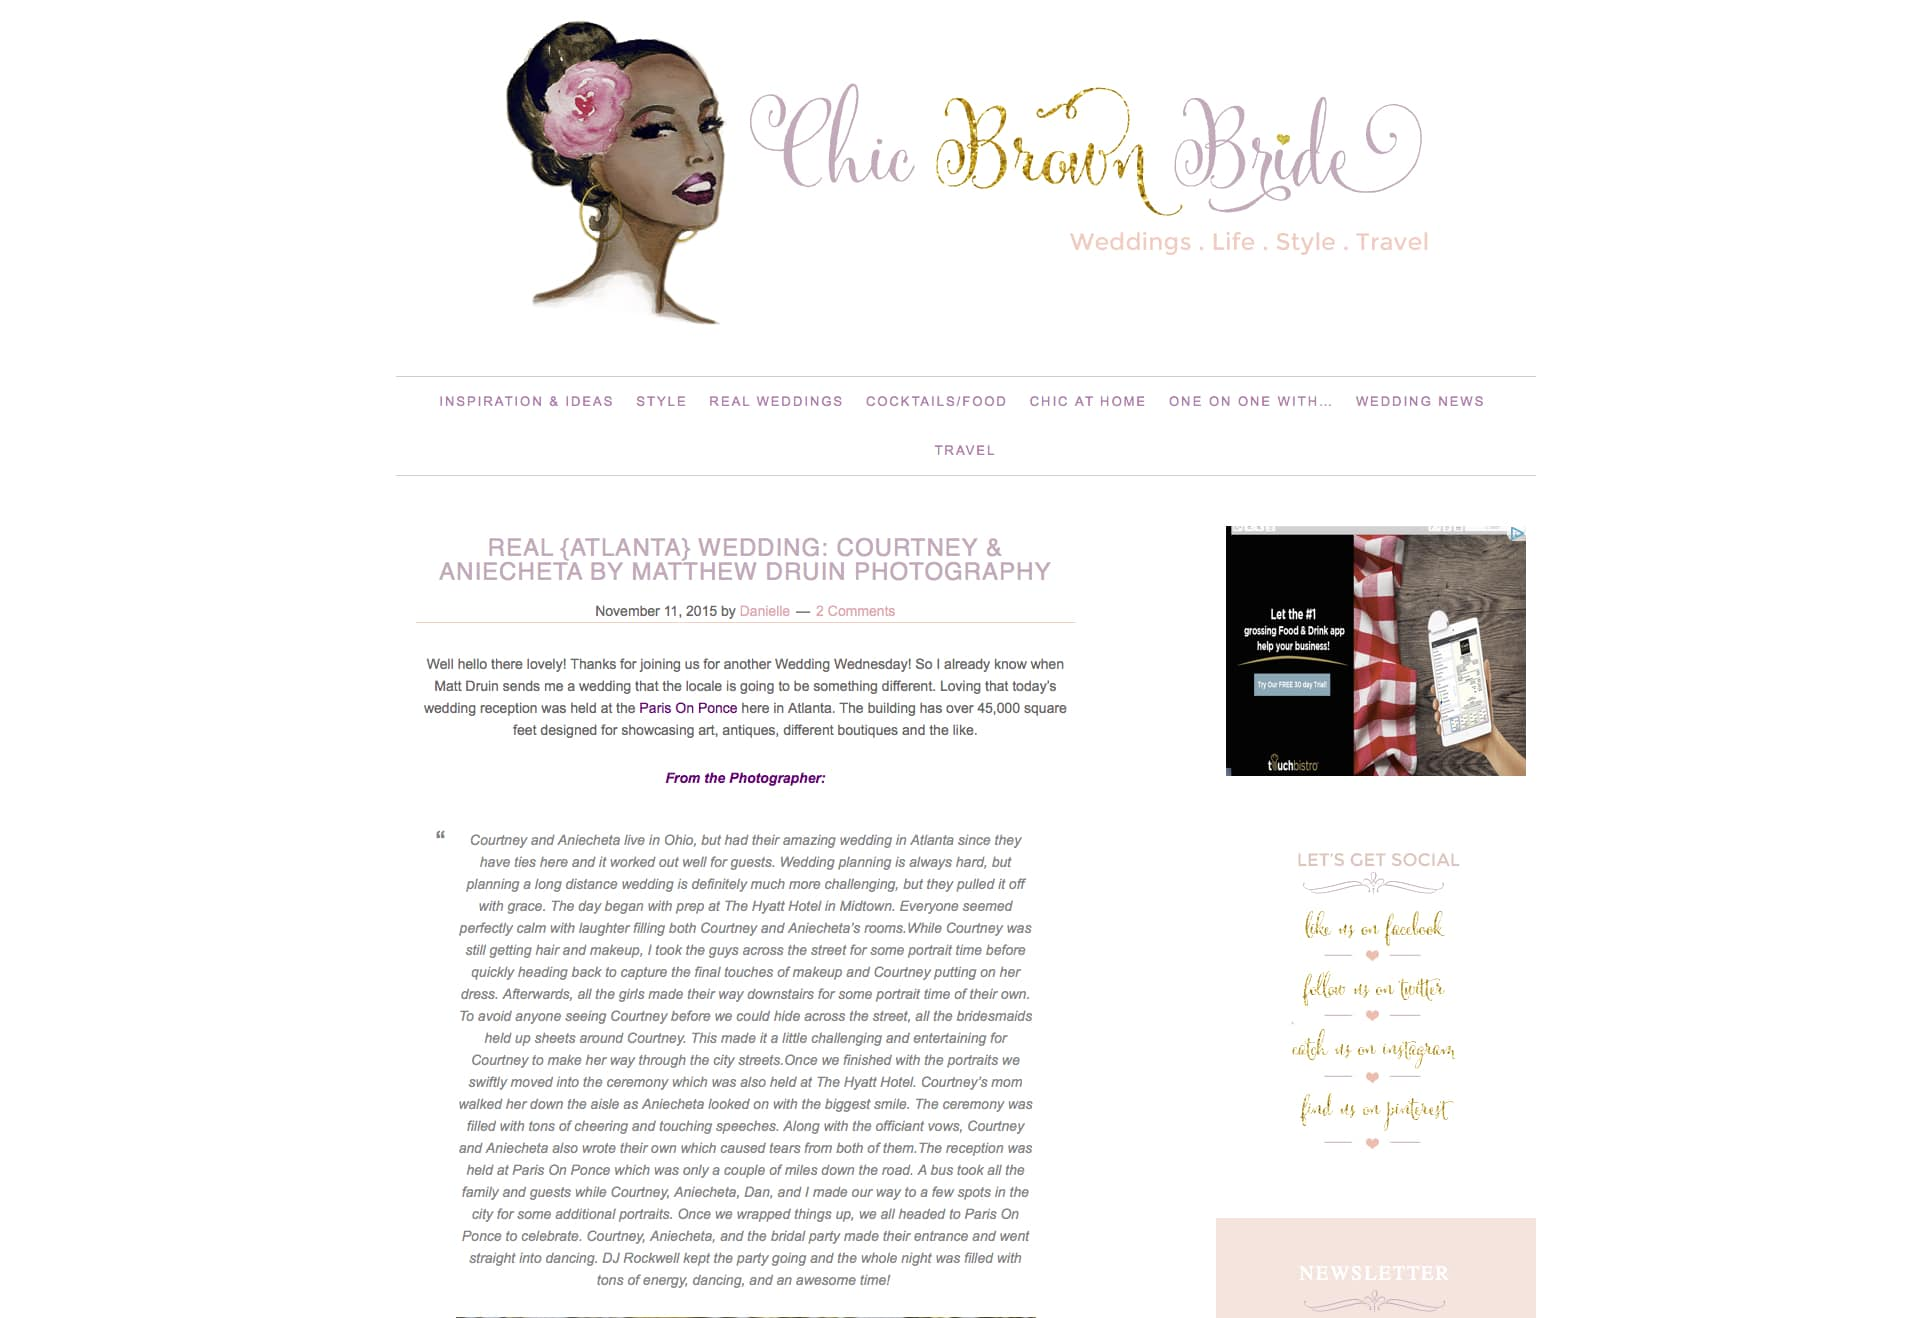 Chic And Co Paris paris on ponce wedding featured on chic brown bride